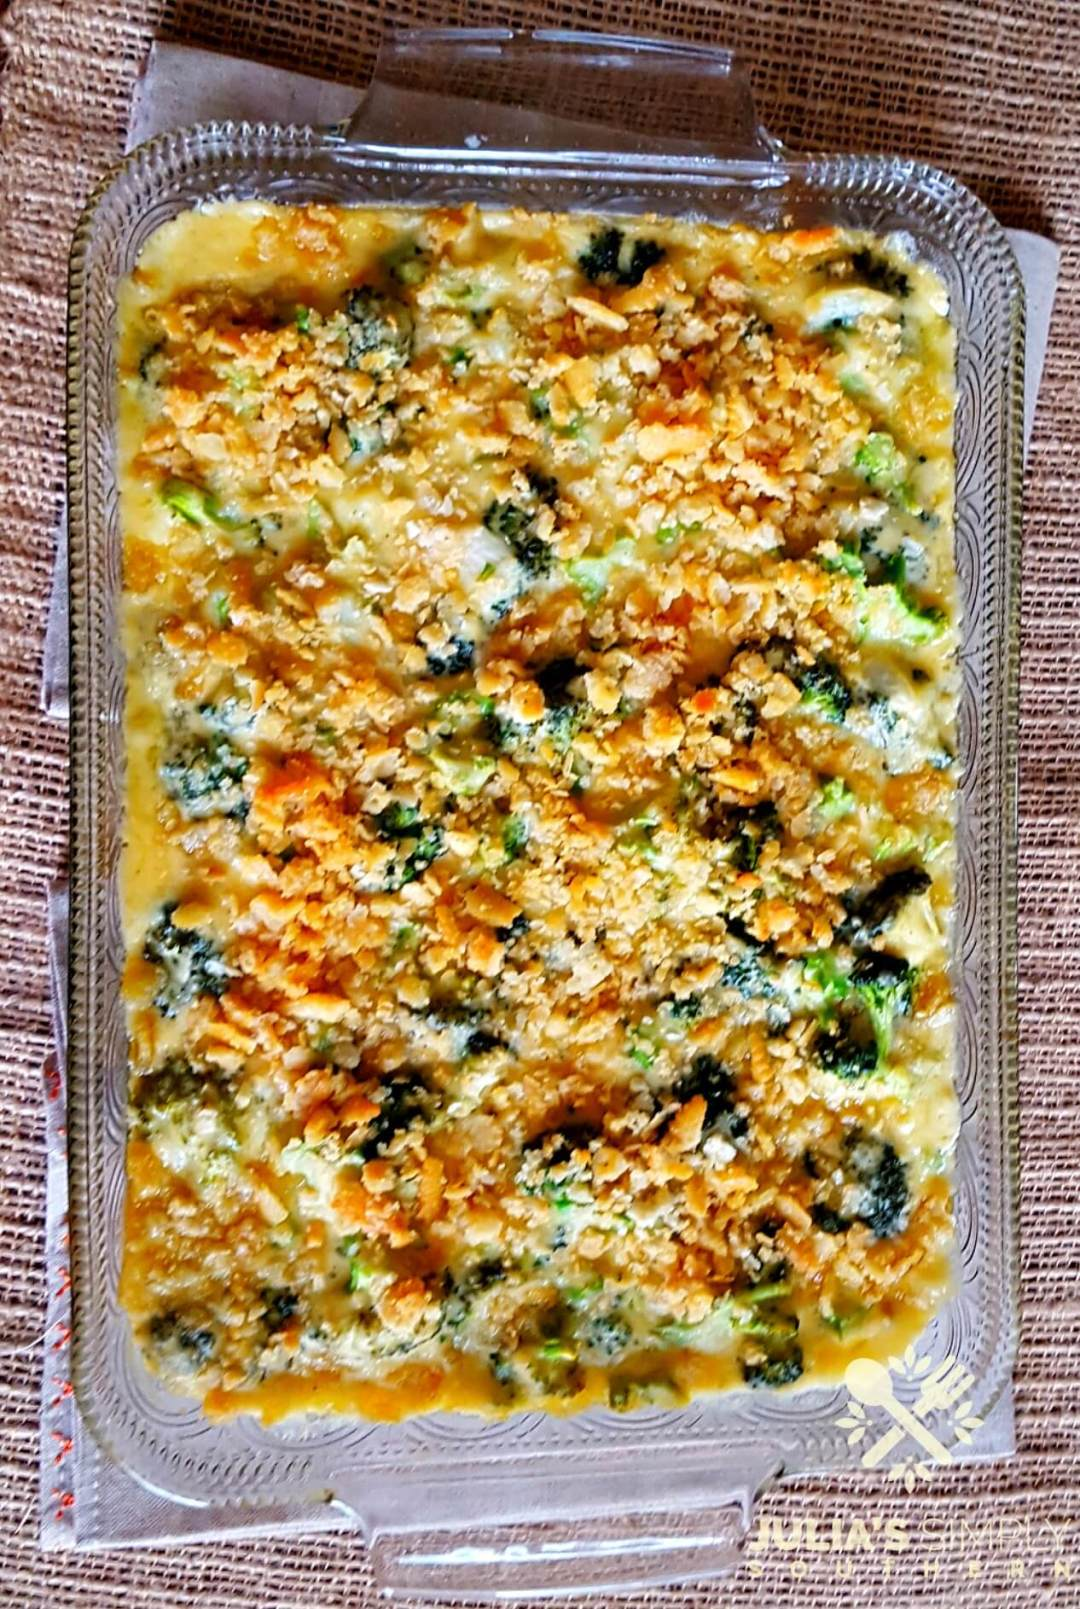 Easy broccoli and cheese baked side dish